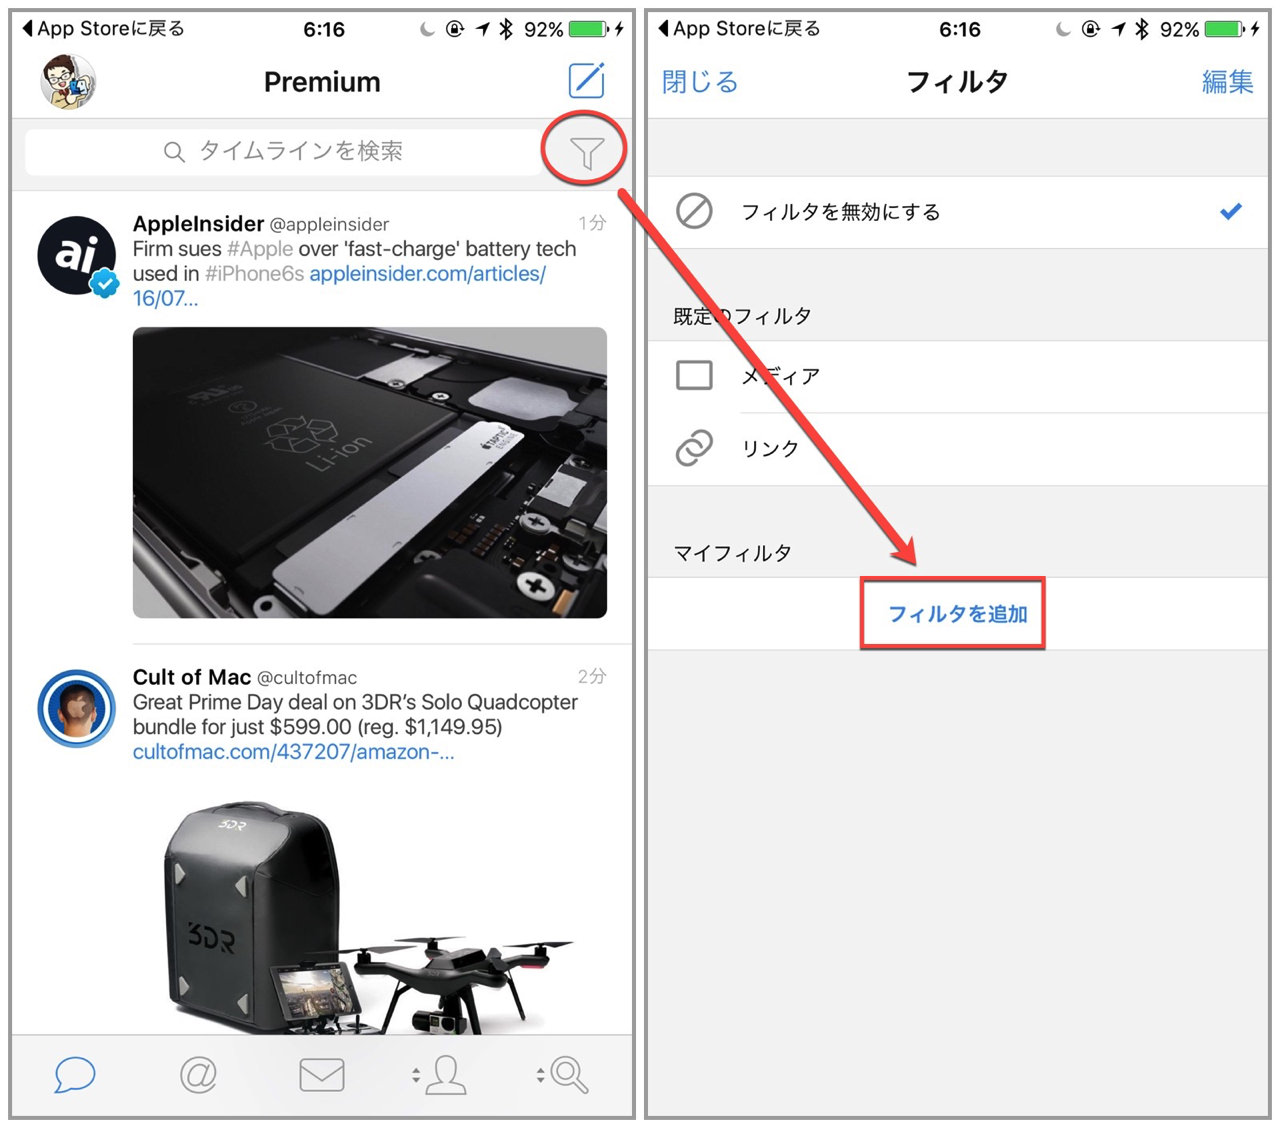 How to apply filter list ios tweetbot 4 for twitter3